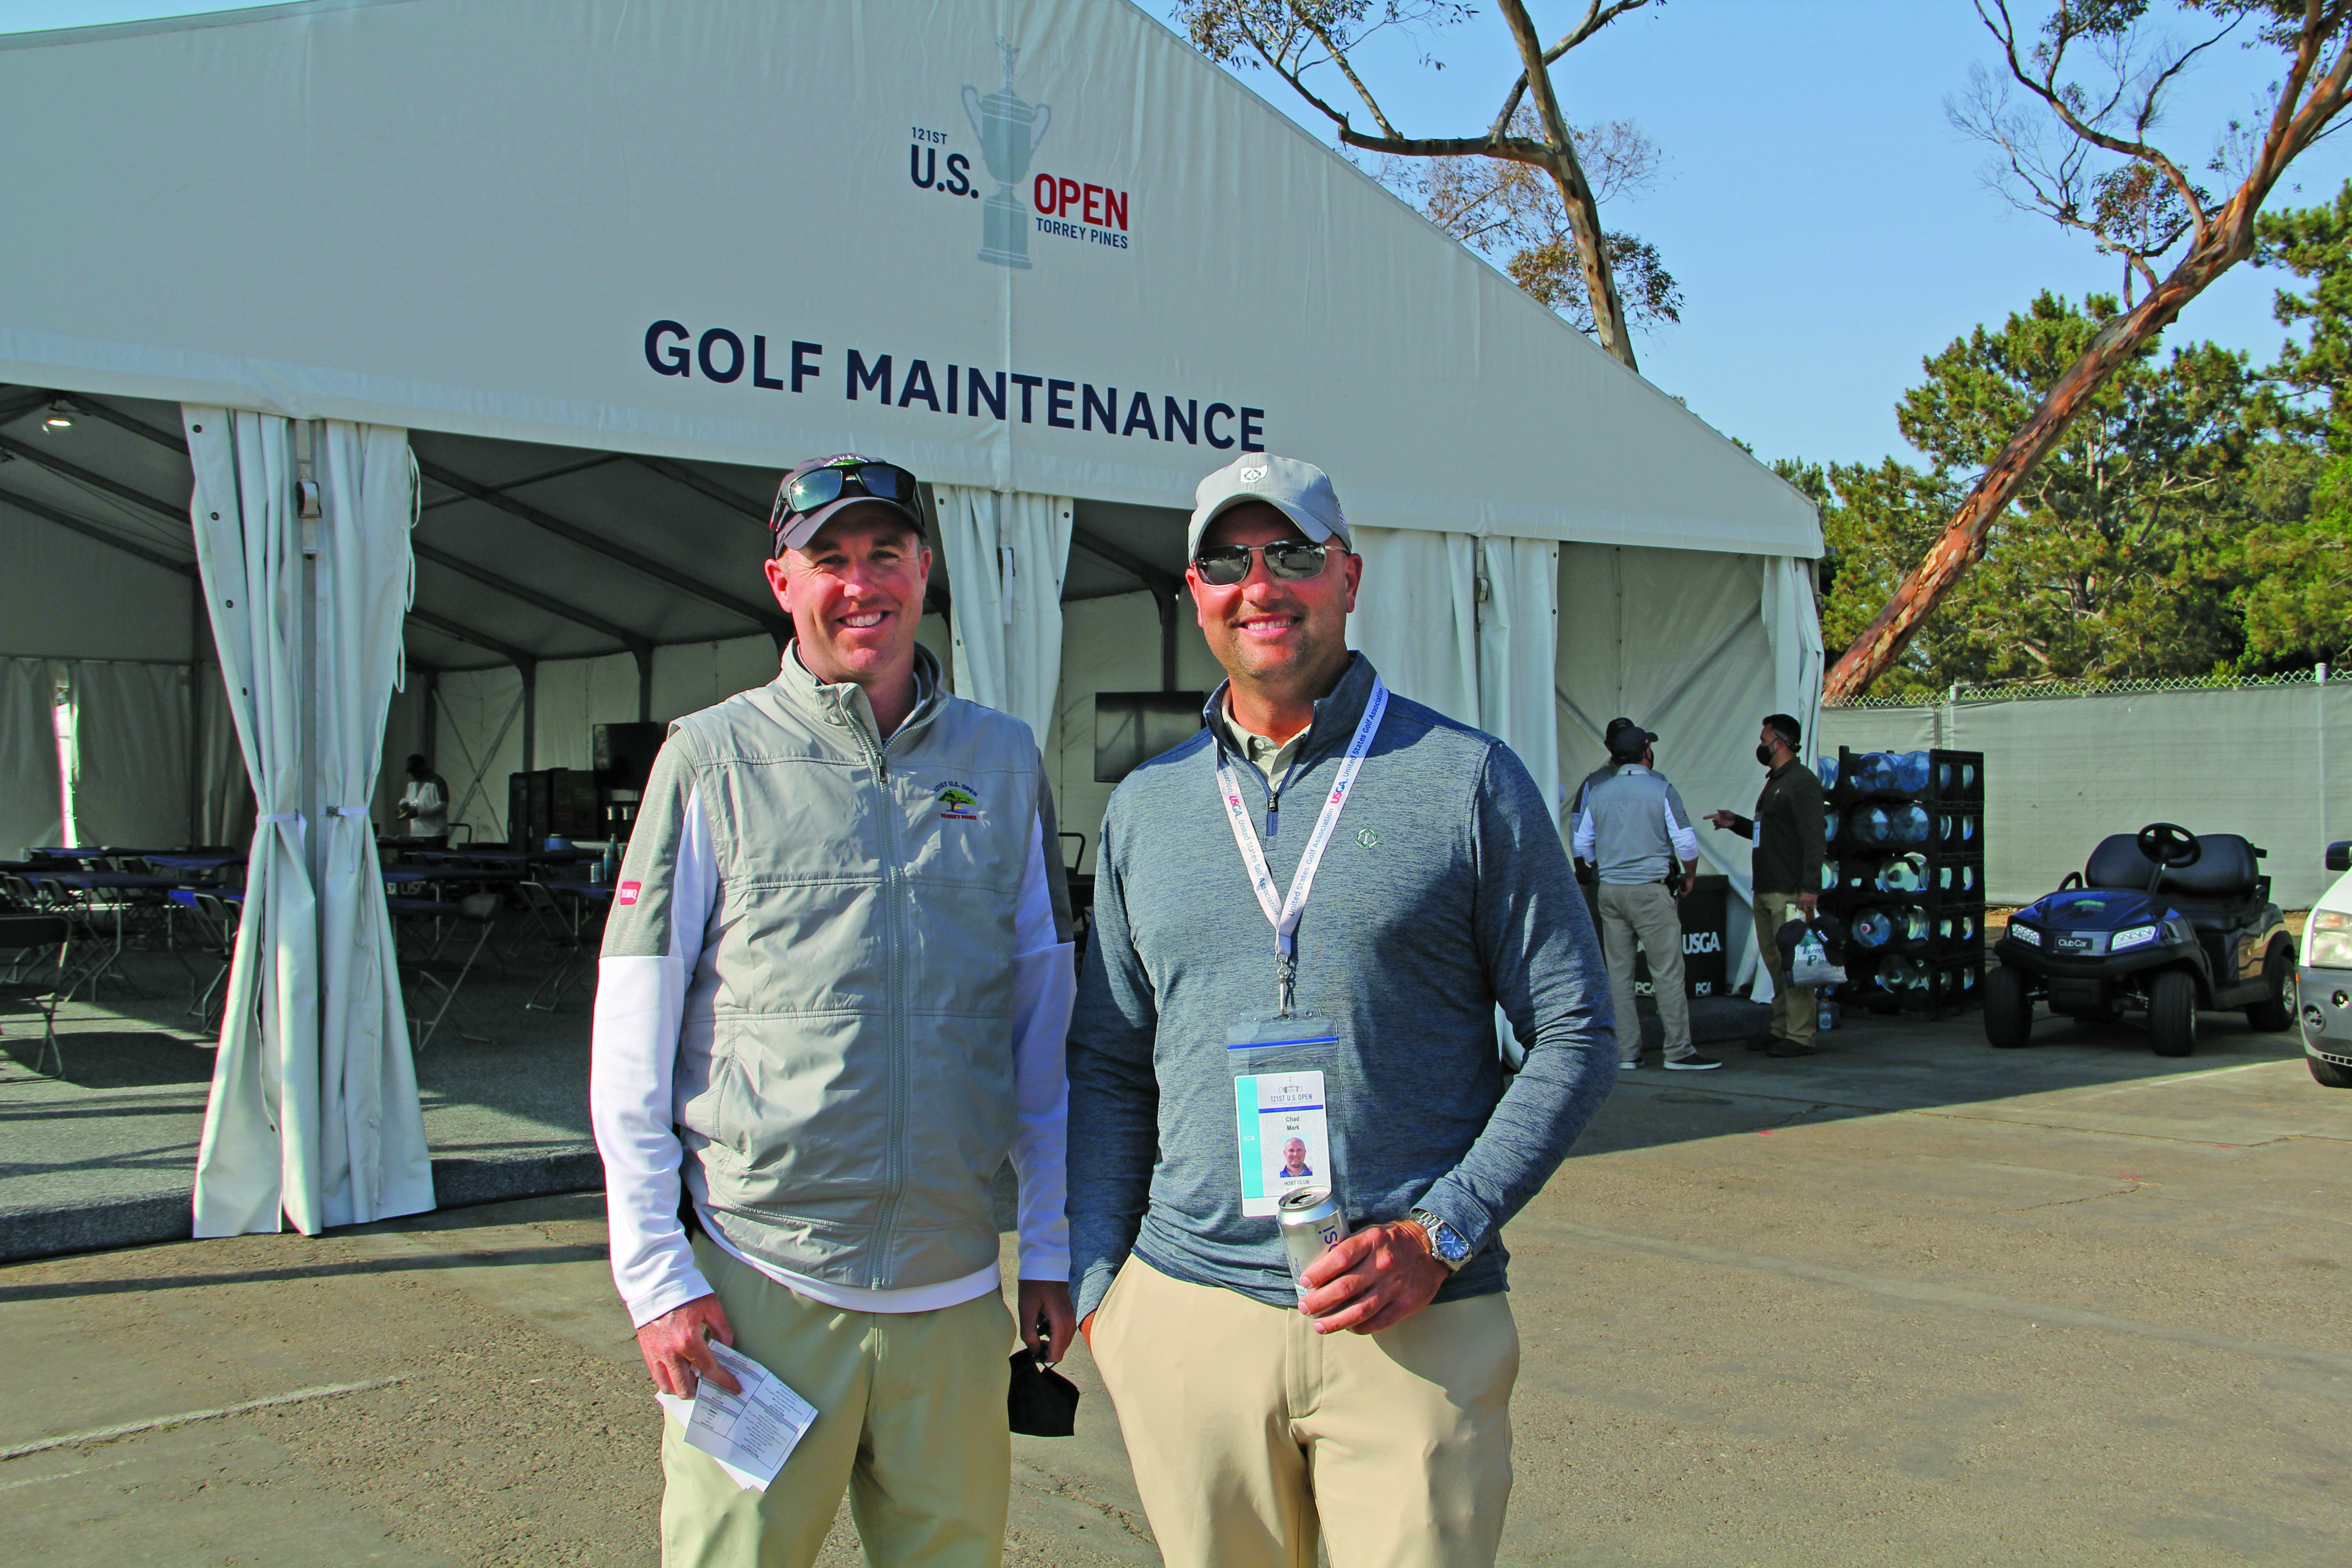 Go Buckeyes! Two Ohio State alums, 2021 U.S. Open host superintendent Rich McIntosh (left), Senior Superintendent, Torrey Pines Golf Courses, San Diego, with his friend Chad Mark, director of grounds, Muirfield Village, Dublin, Ohio. (Photo: Golfdom Staff)